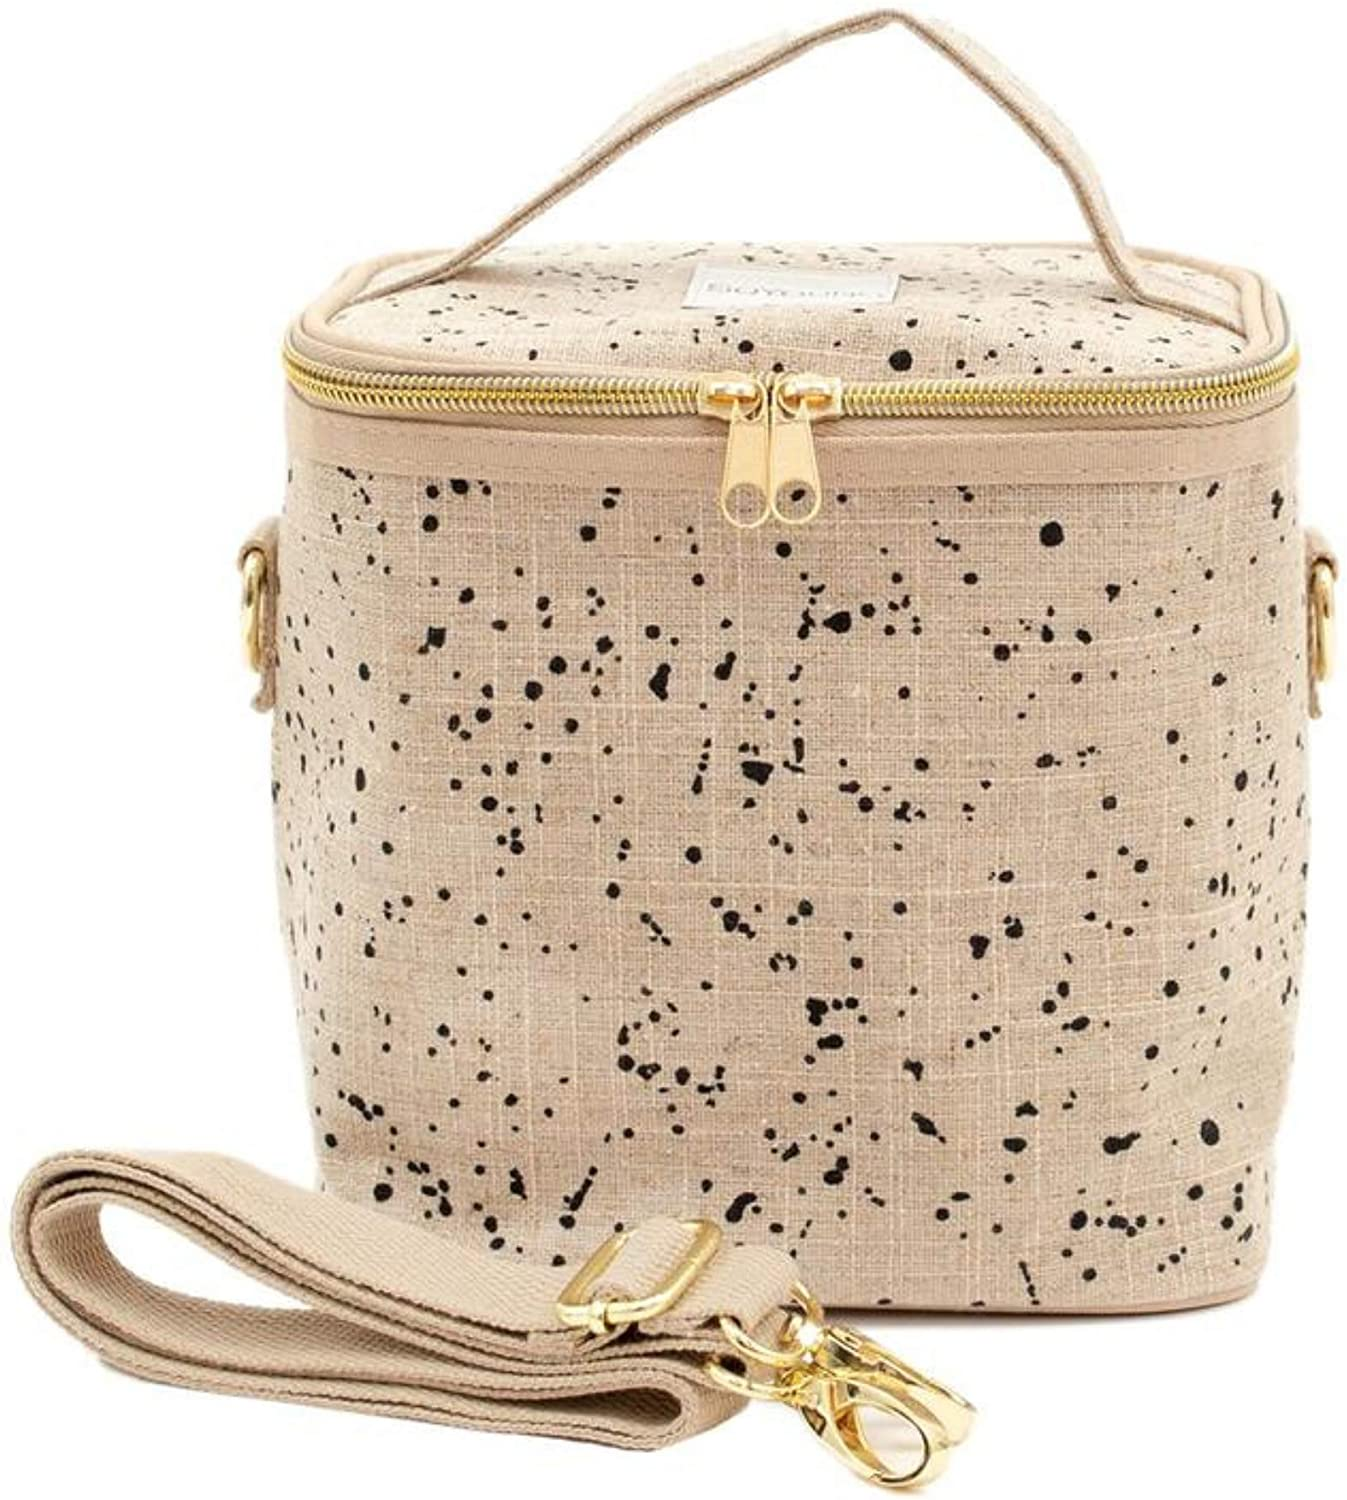 SoYoung Linen Splatter Petite Poche   Stylish, Modern Insulated Lunch Bag for Women   Machine Washable   Removable Insulated Liner   Detachable Messenger Strap